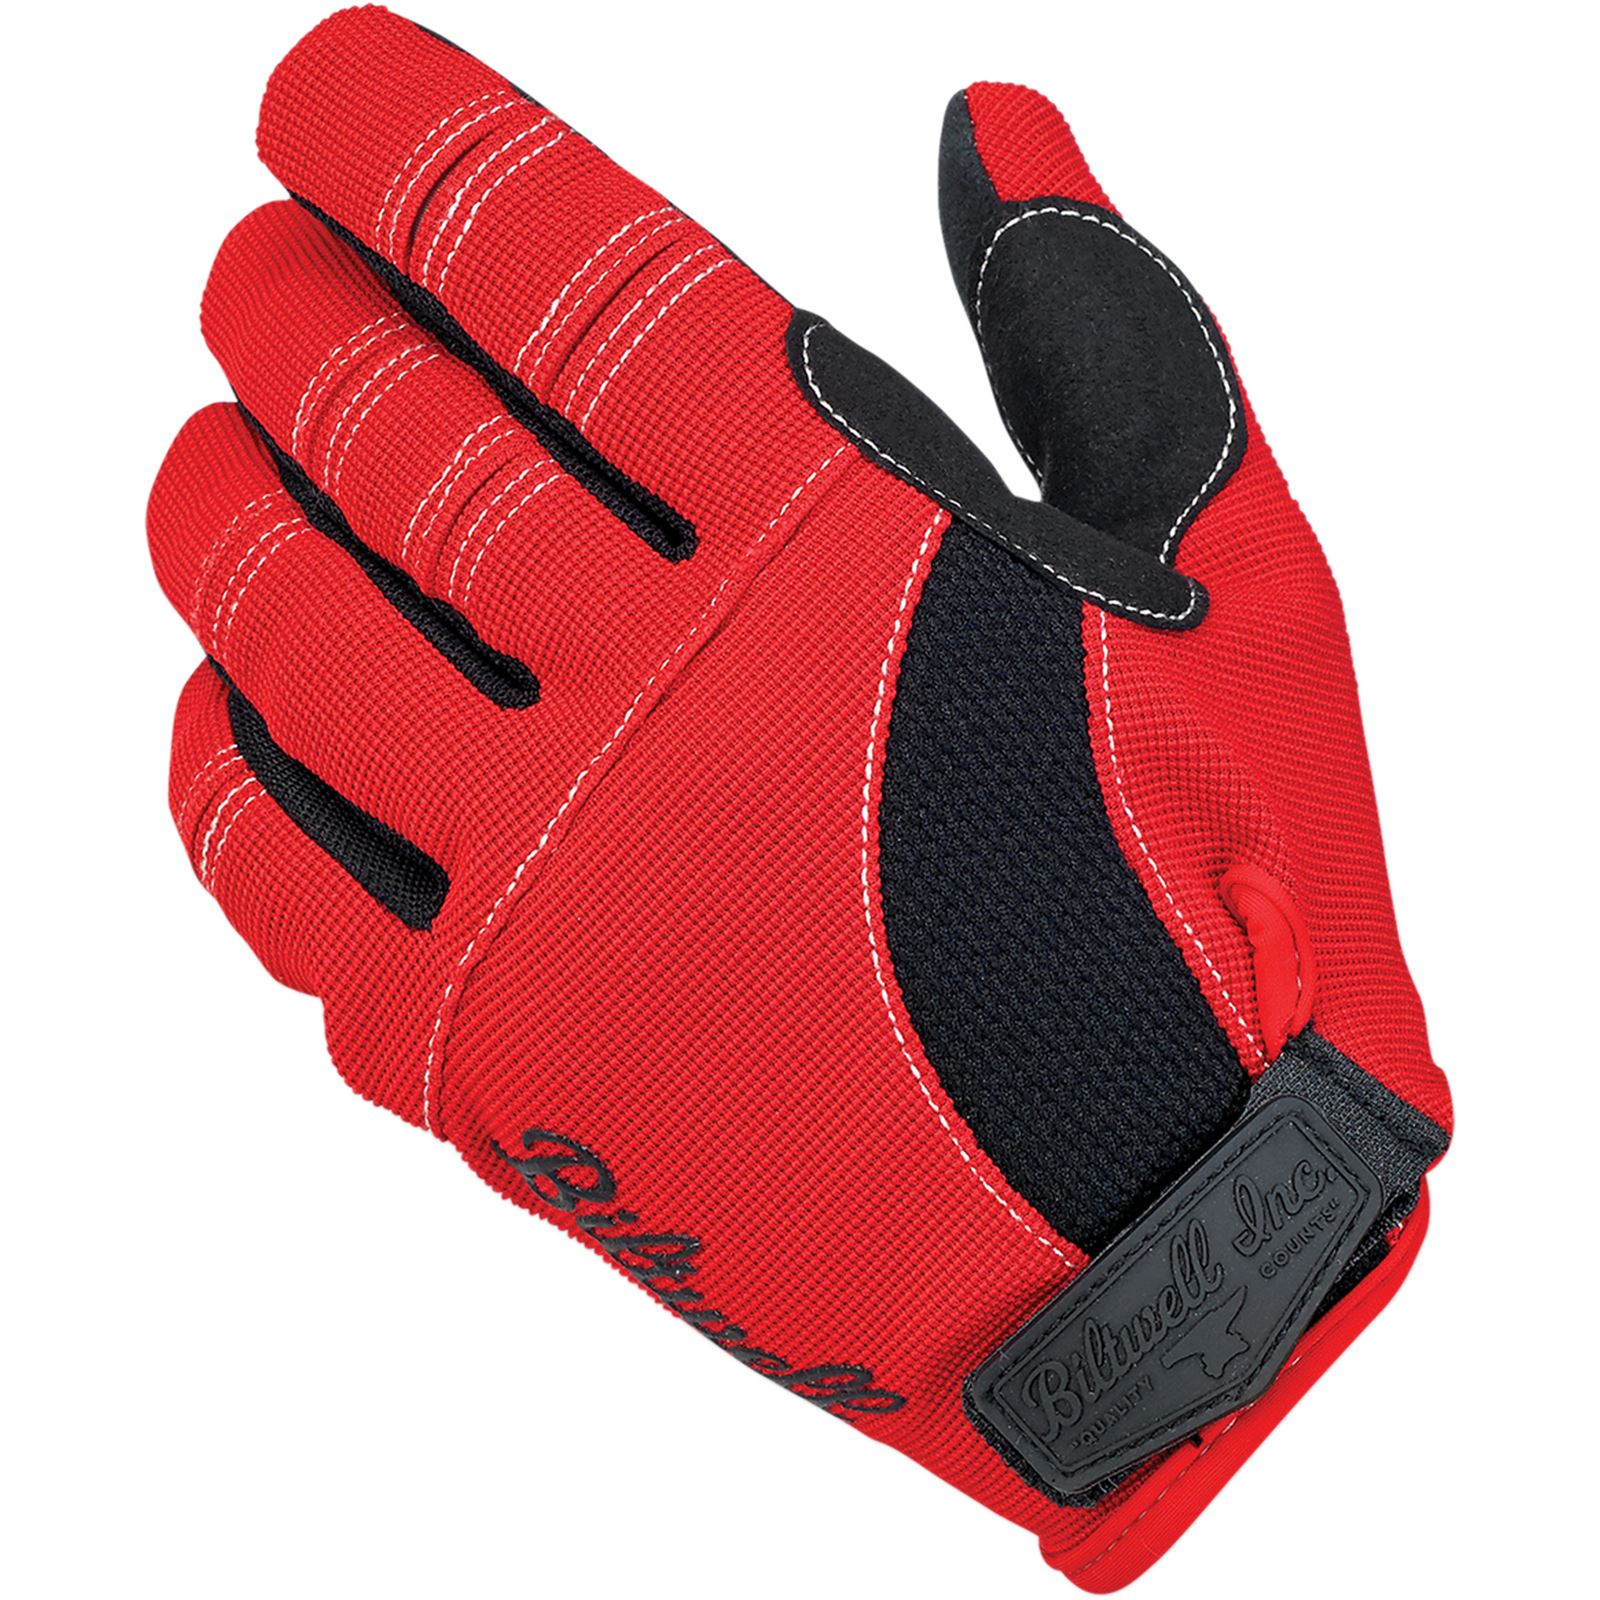 Biltwell Inc. Moto Gloves - Red/Black/White - Small